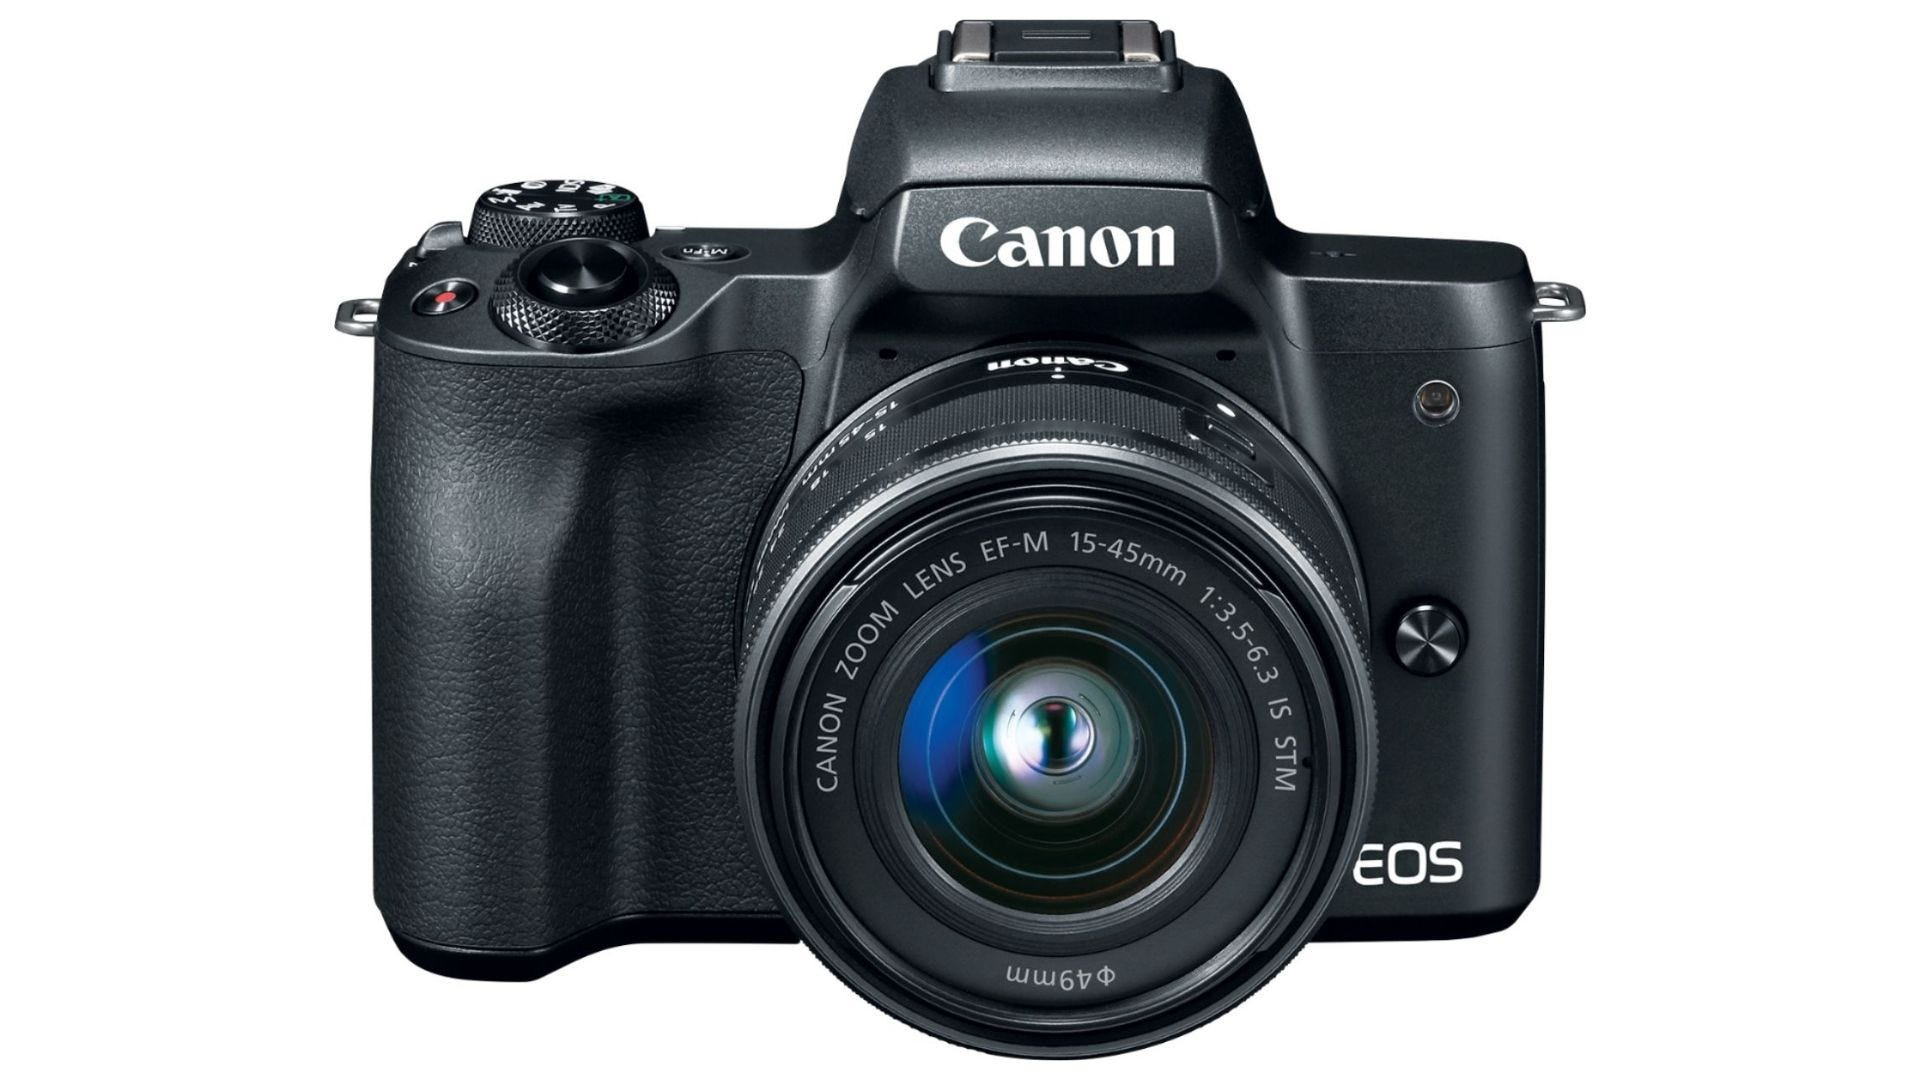 Canon - EOS M50 Mirrorless Camera body plus EF-M 15-45mm f3.5-6.3 IS STM Zoom Lens